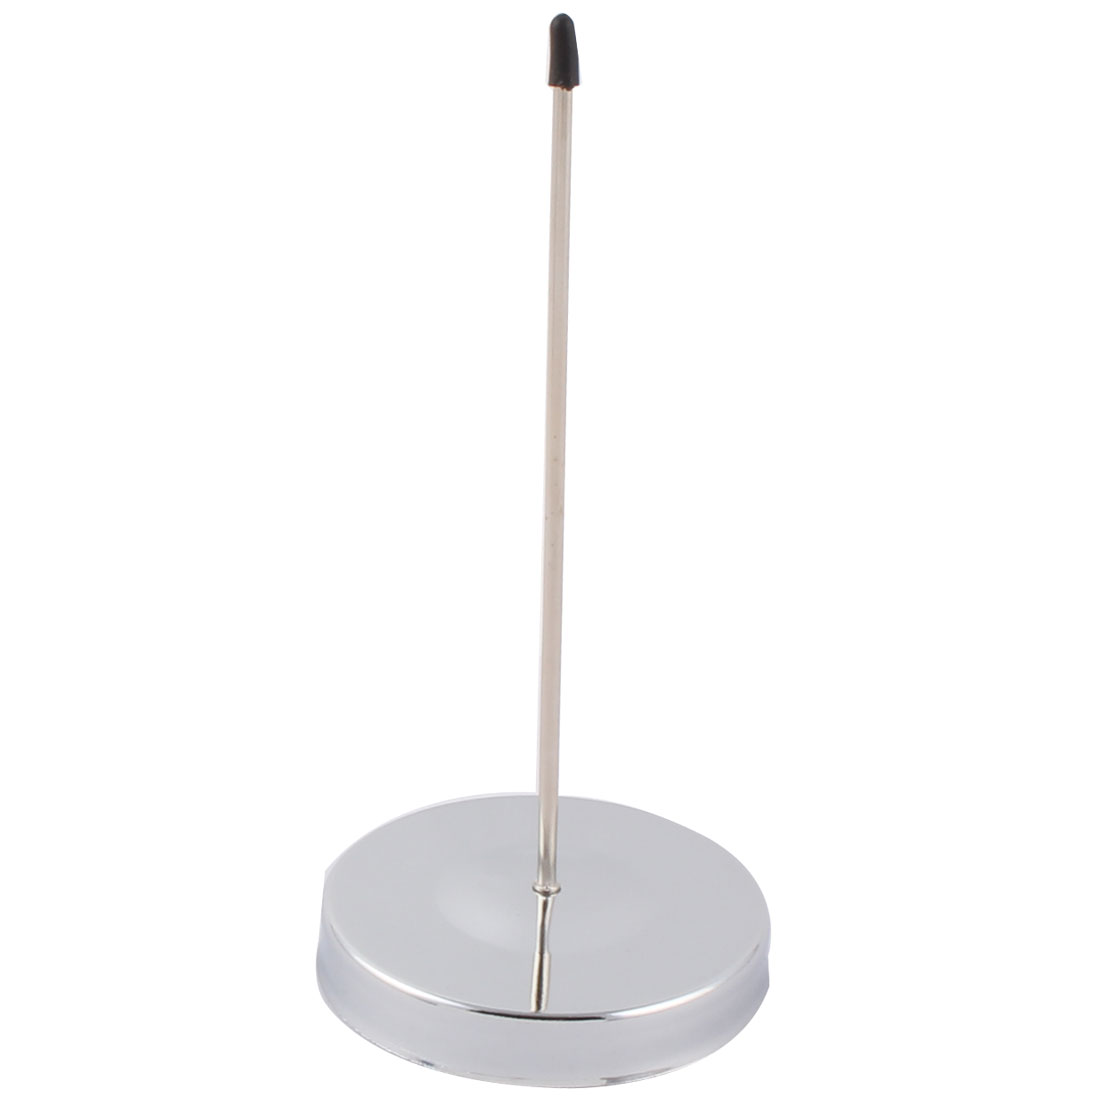 7.5cm Base Diameter Stainless Steel Memo Holder Spike Stick for Receipt